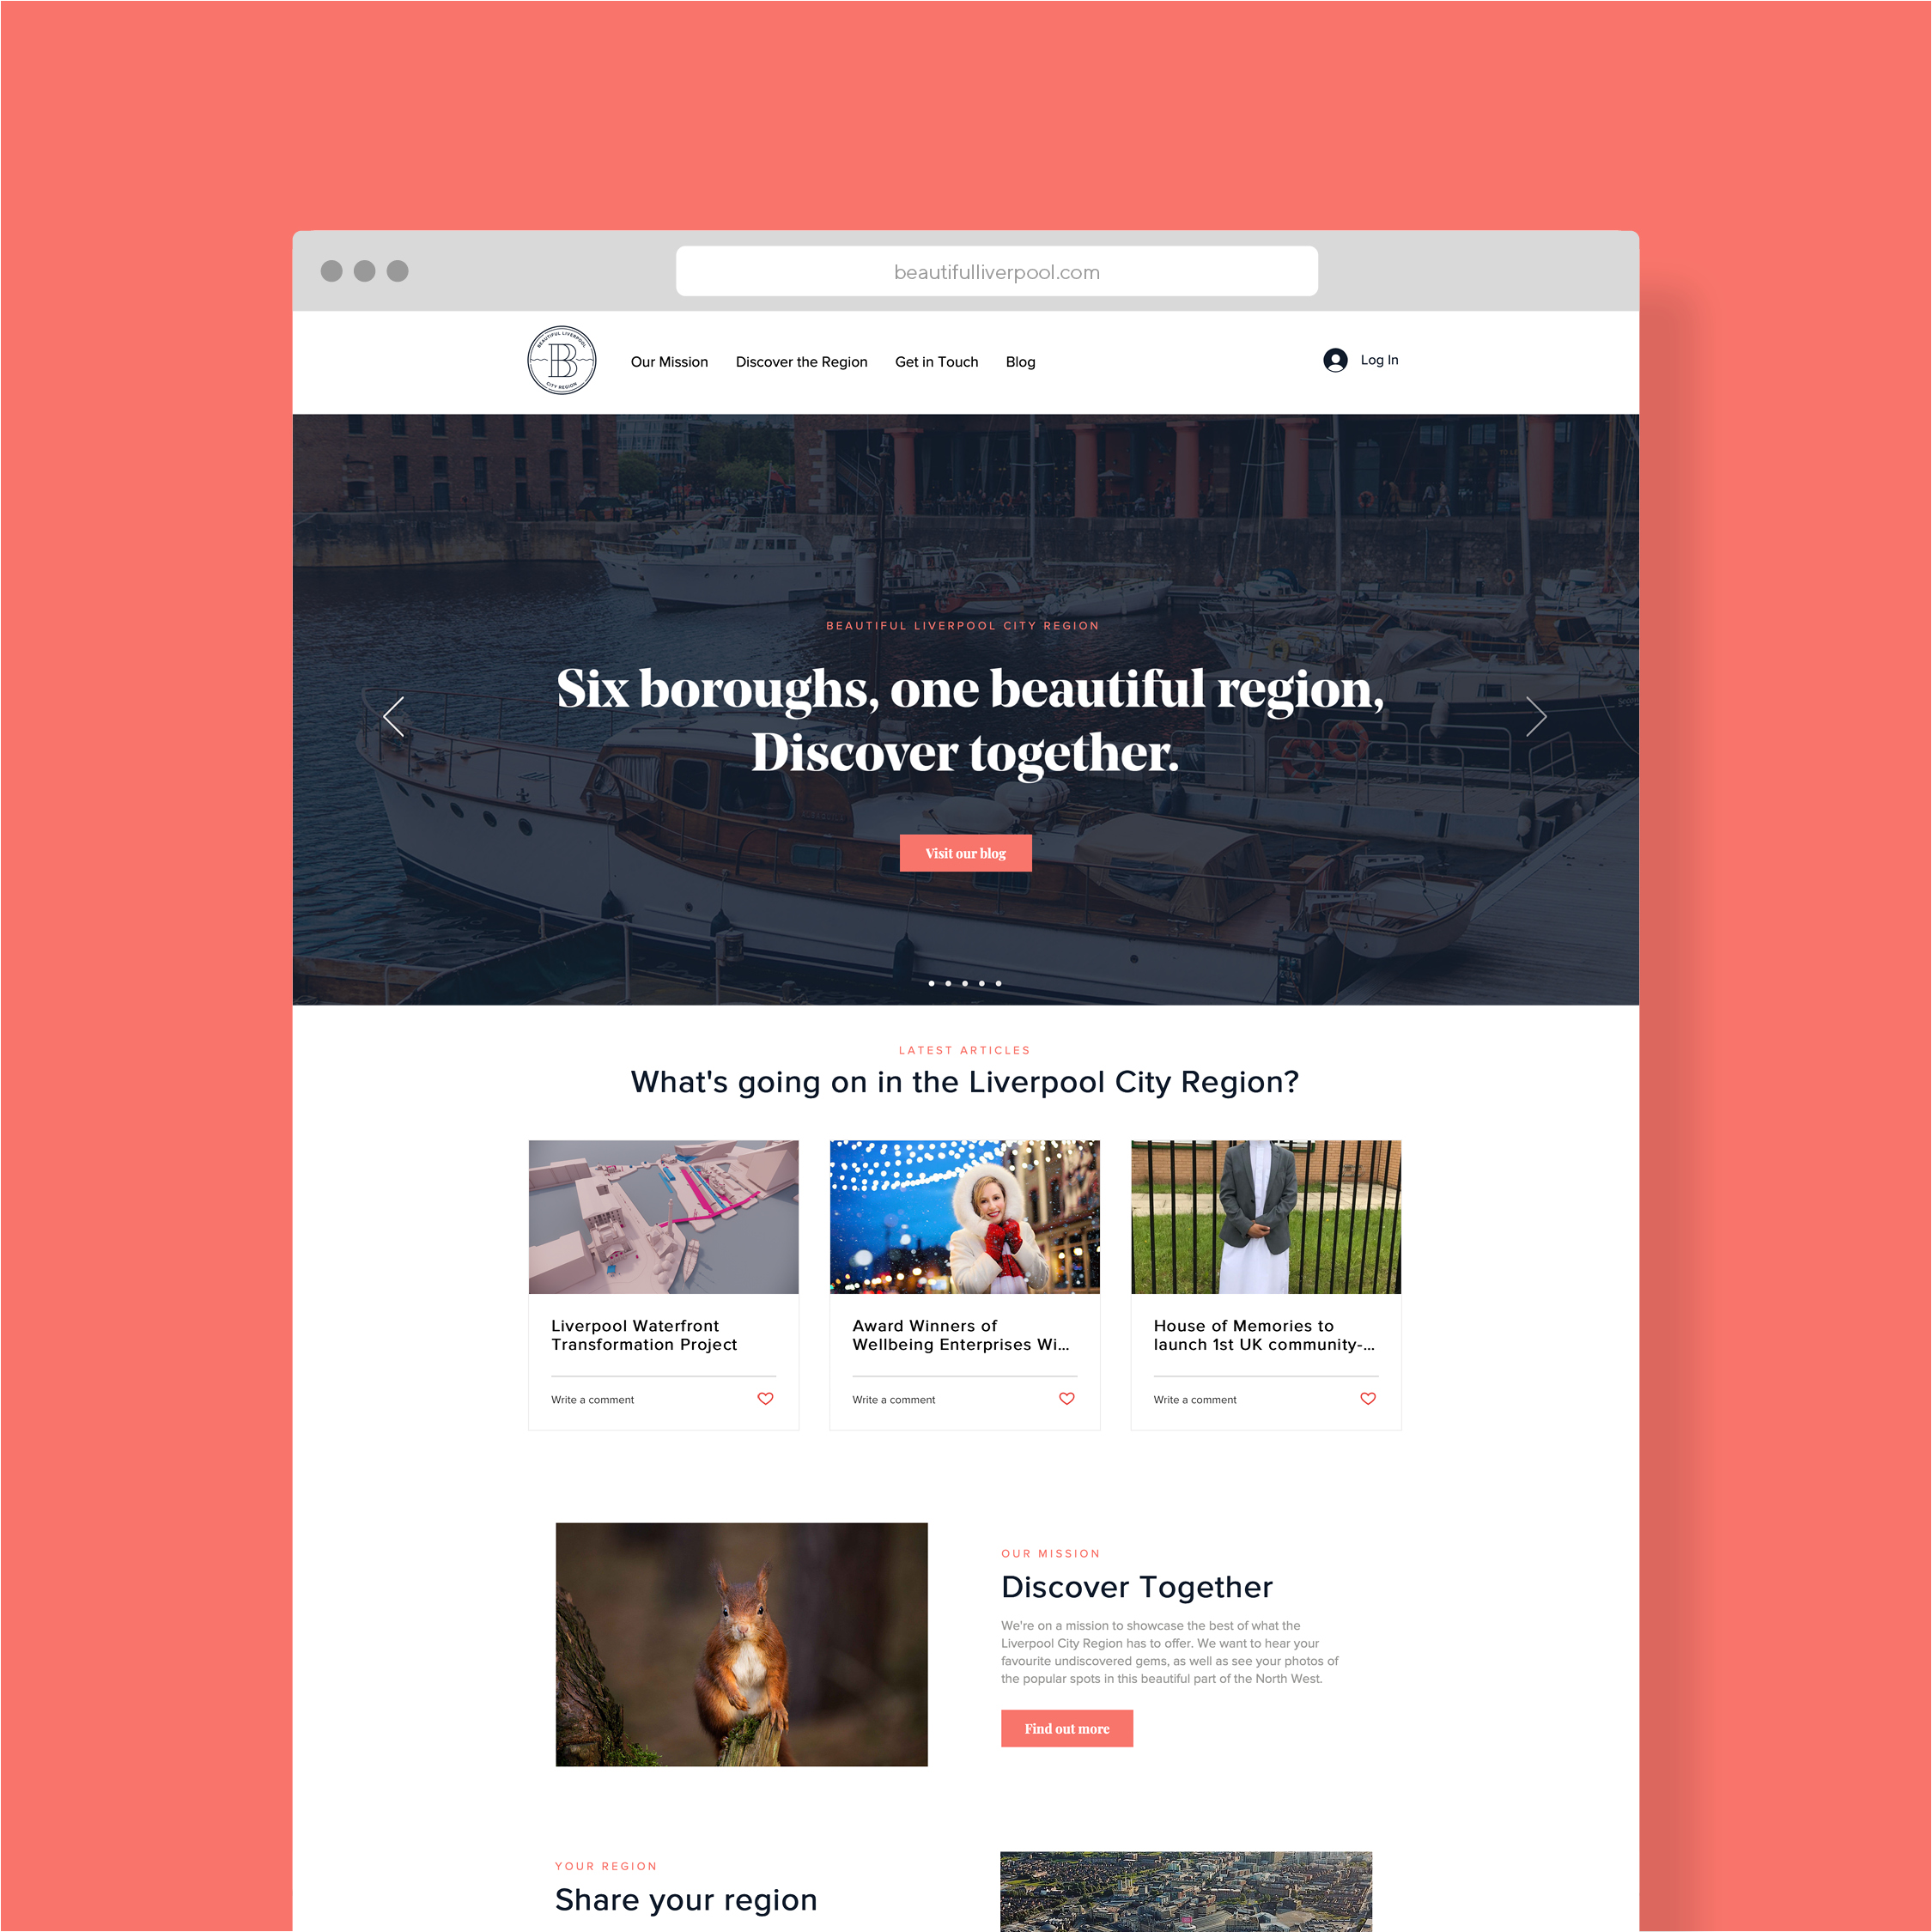 Beautiful Liverpool website design